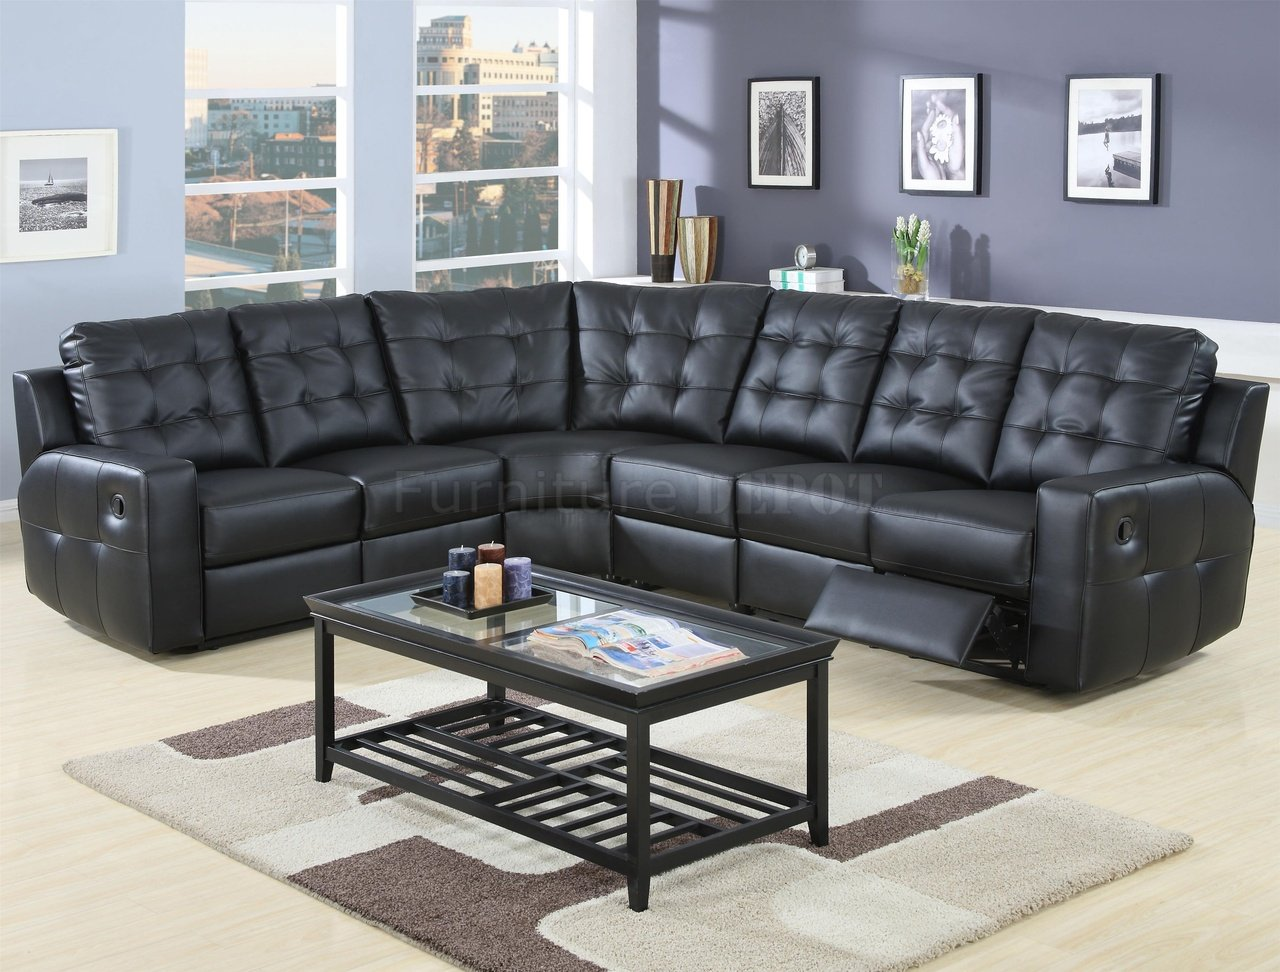 Recliner Sofa Sectional Ideas : sofa sectional recliner - islam-shia.org